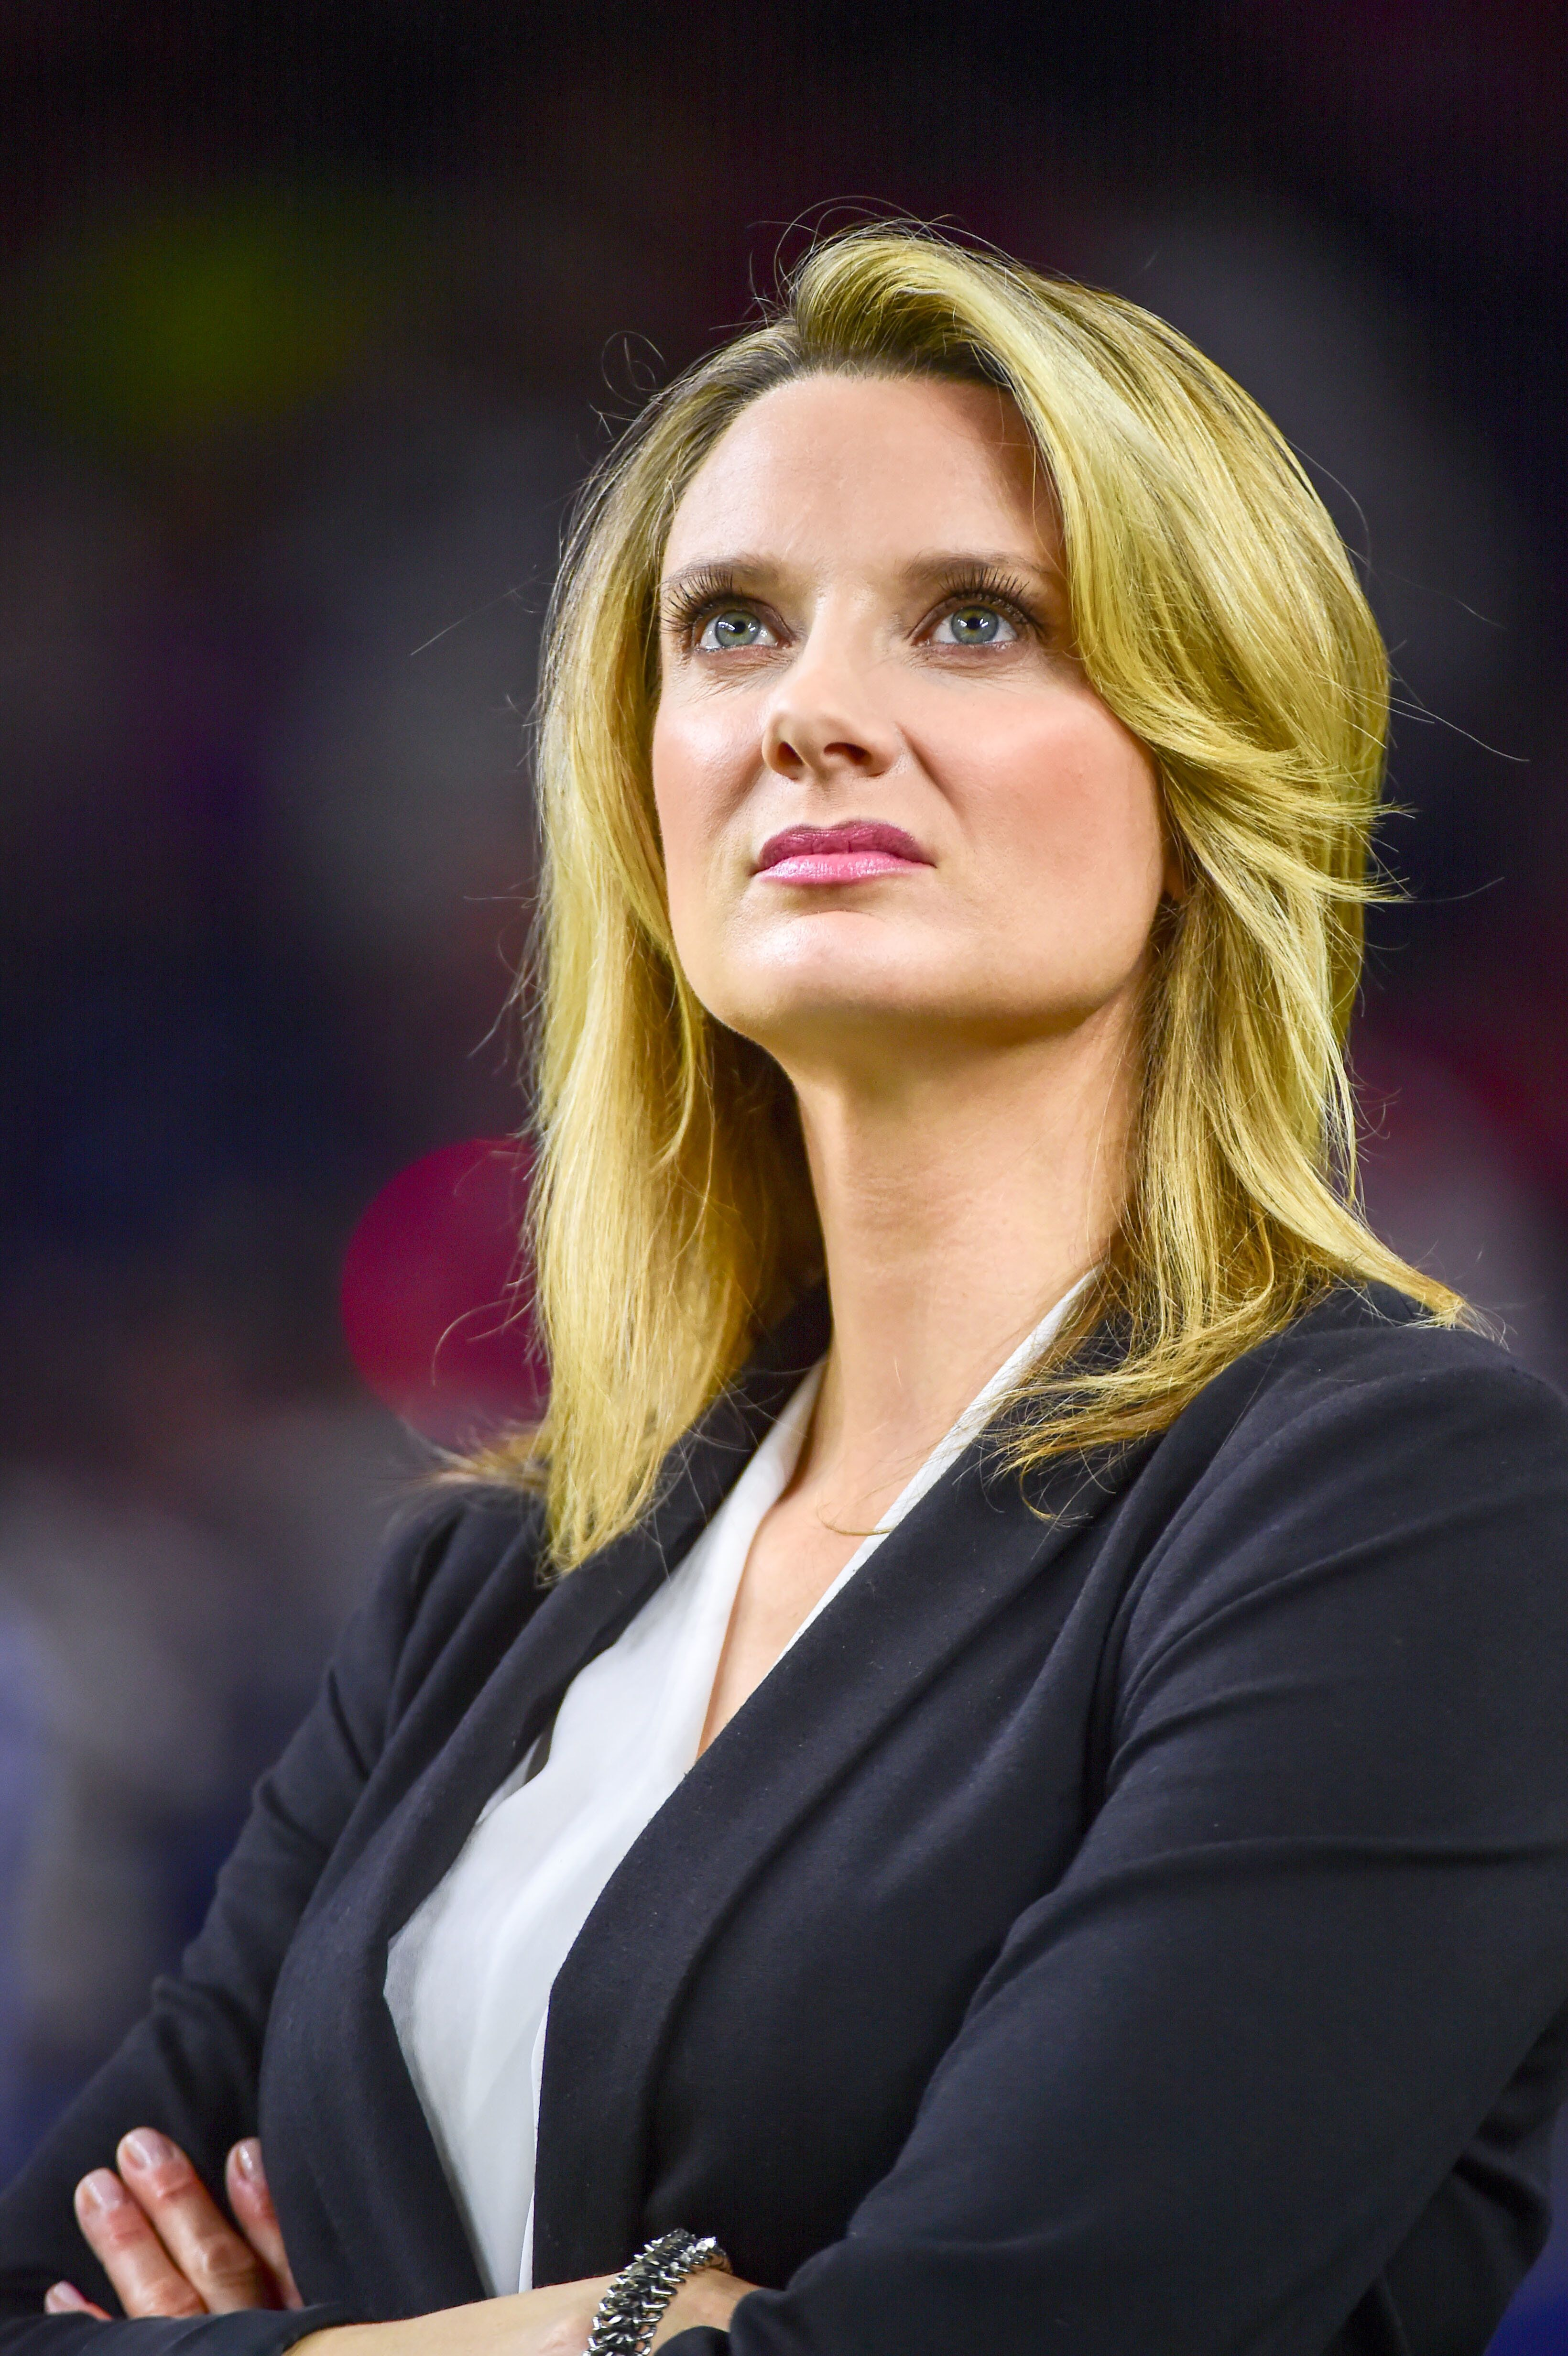 HOUSTON, TX - DECEMBER 24: NFL Network sideline reporter Stacey Dales watches from the sideline during the NFL game between the Cincinnati Bengals and Houston Texans on December 24, 2016, at NRG Stadium in Houston, Texas. (Photo by Ken Murray/Icon Sportswire via Getty Images)